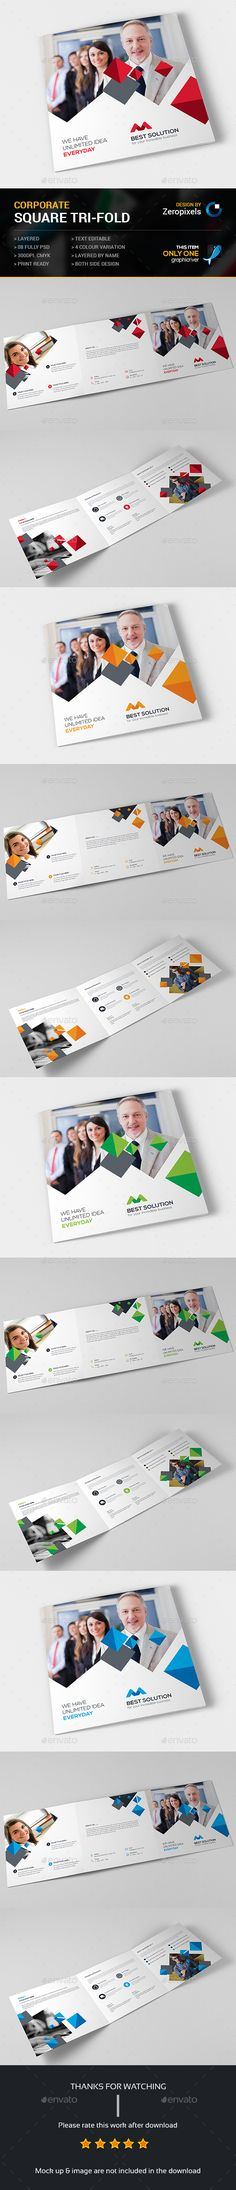 Square Tri-fold Brochure Template PSD. Download here: http://graphicriver.net/item/square-trifold-brochure/14885953?ref=ksioks